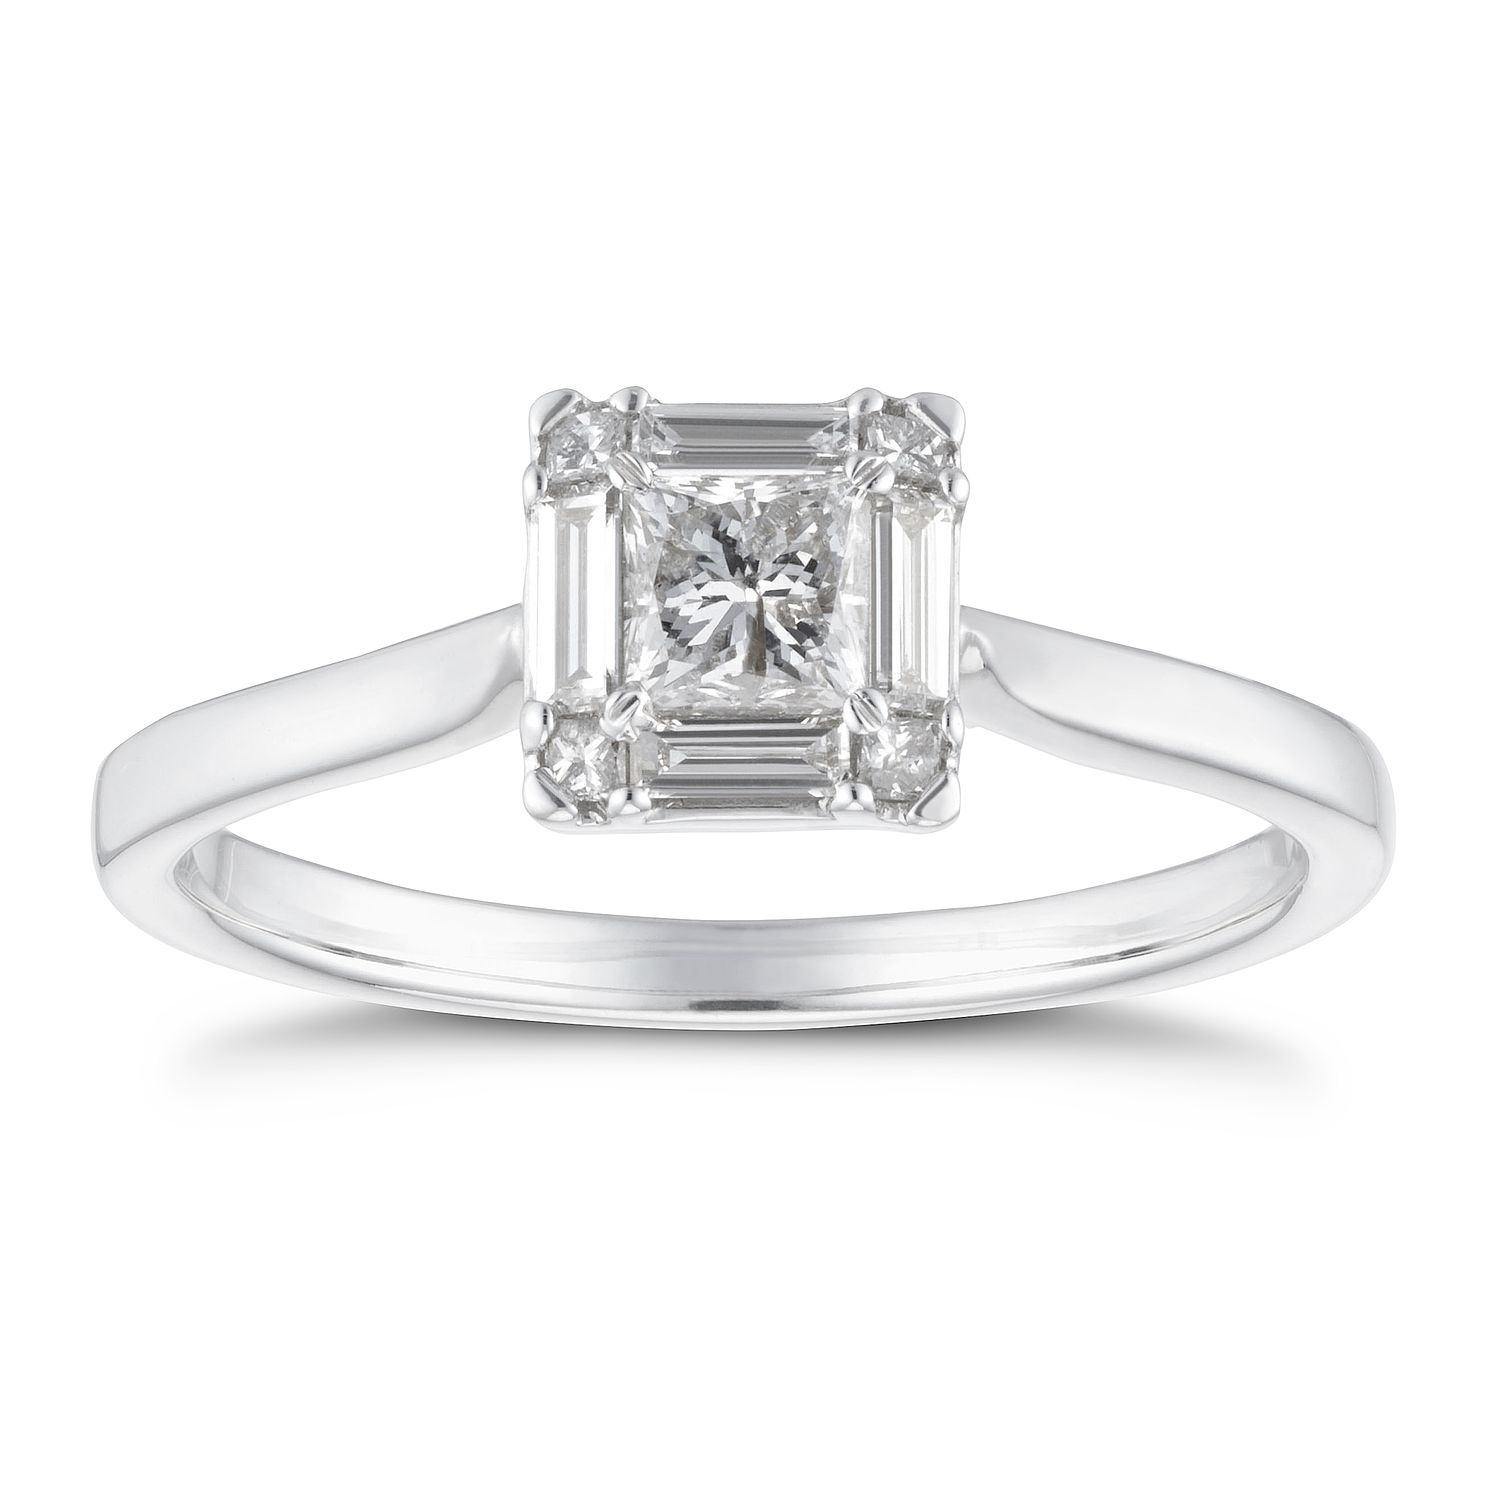 18ct White Gold 1/2ct Diamond Square Ring - Product number 4232941